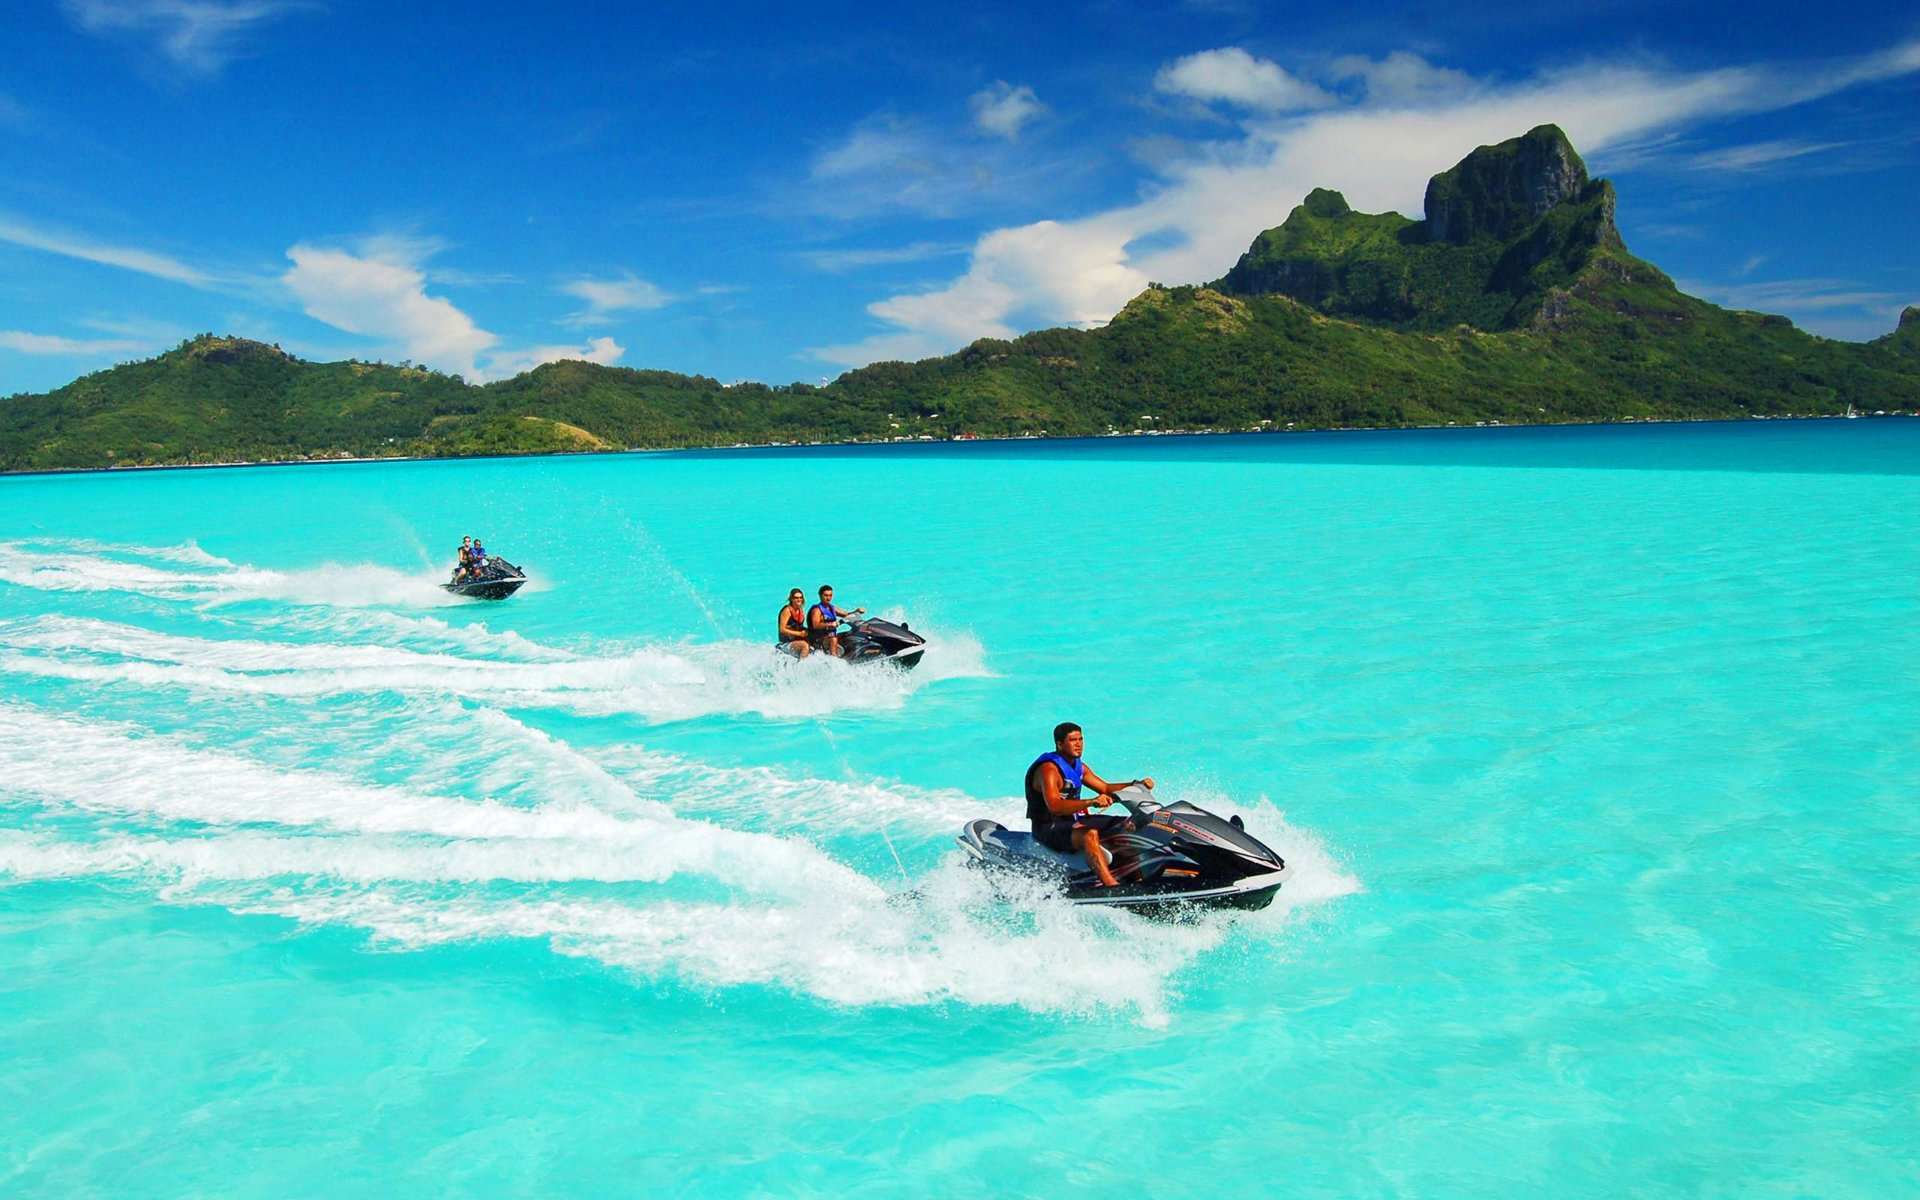 Jet Skiing In Bora Full HD Wallpaper And Background Image